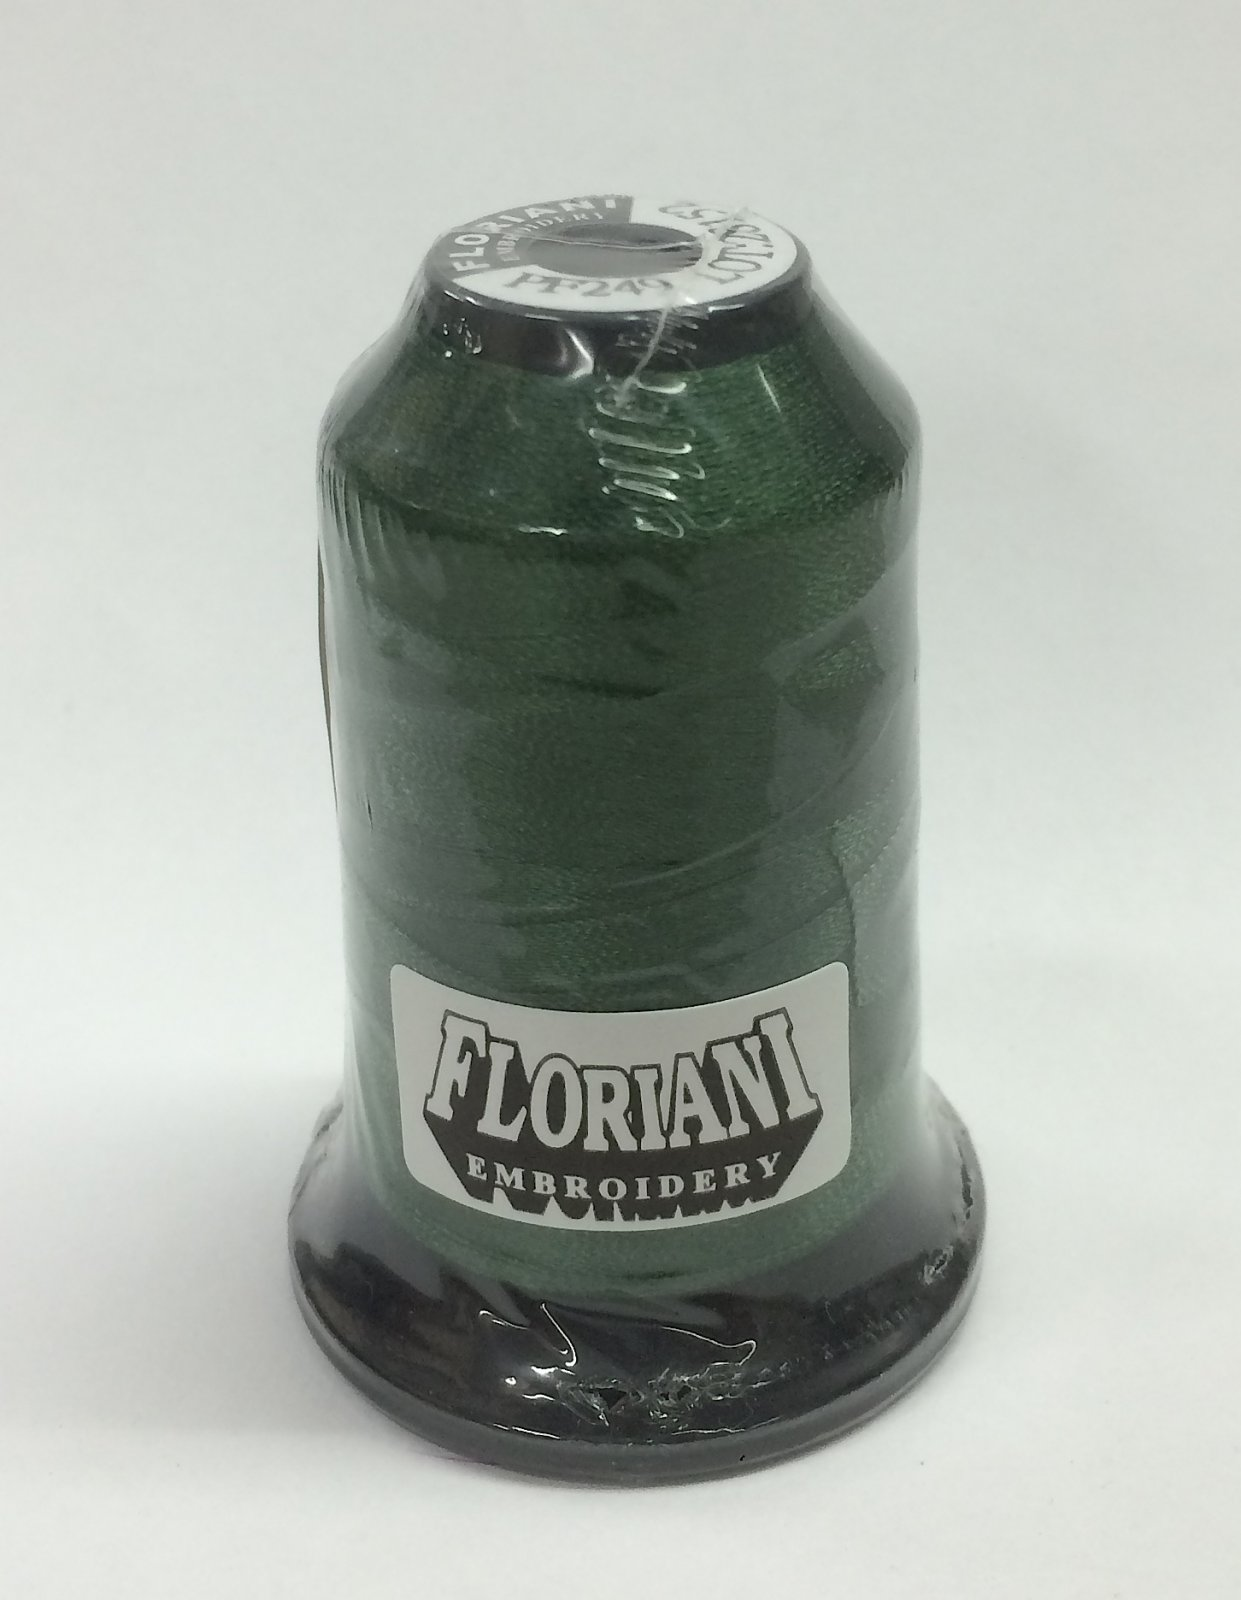 Floriani Embroidery Thread Color #0249